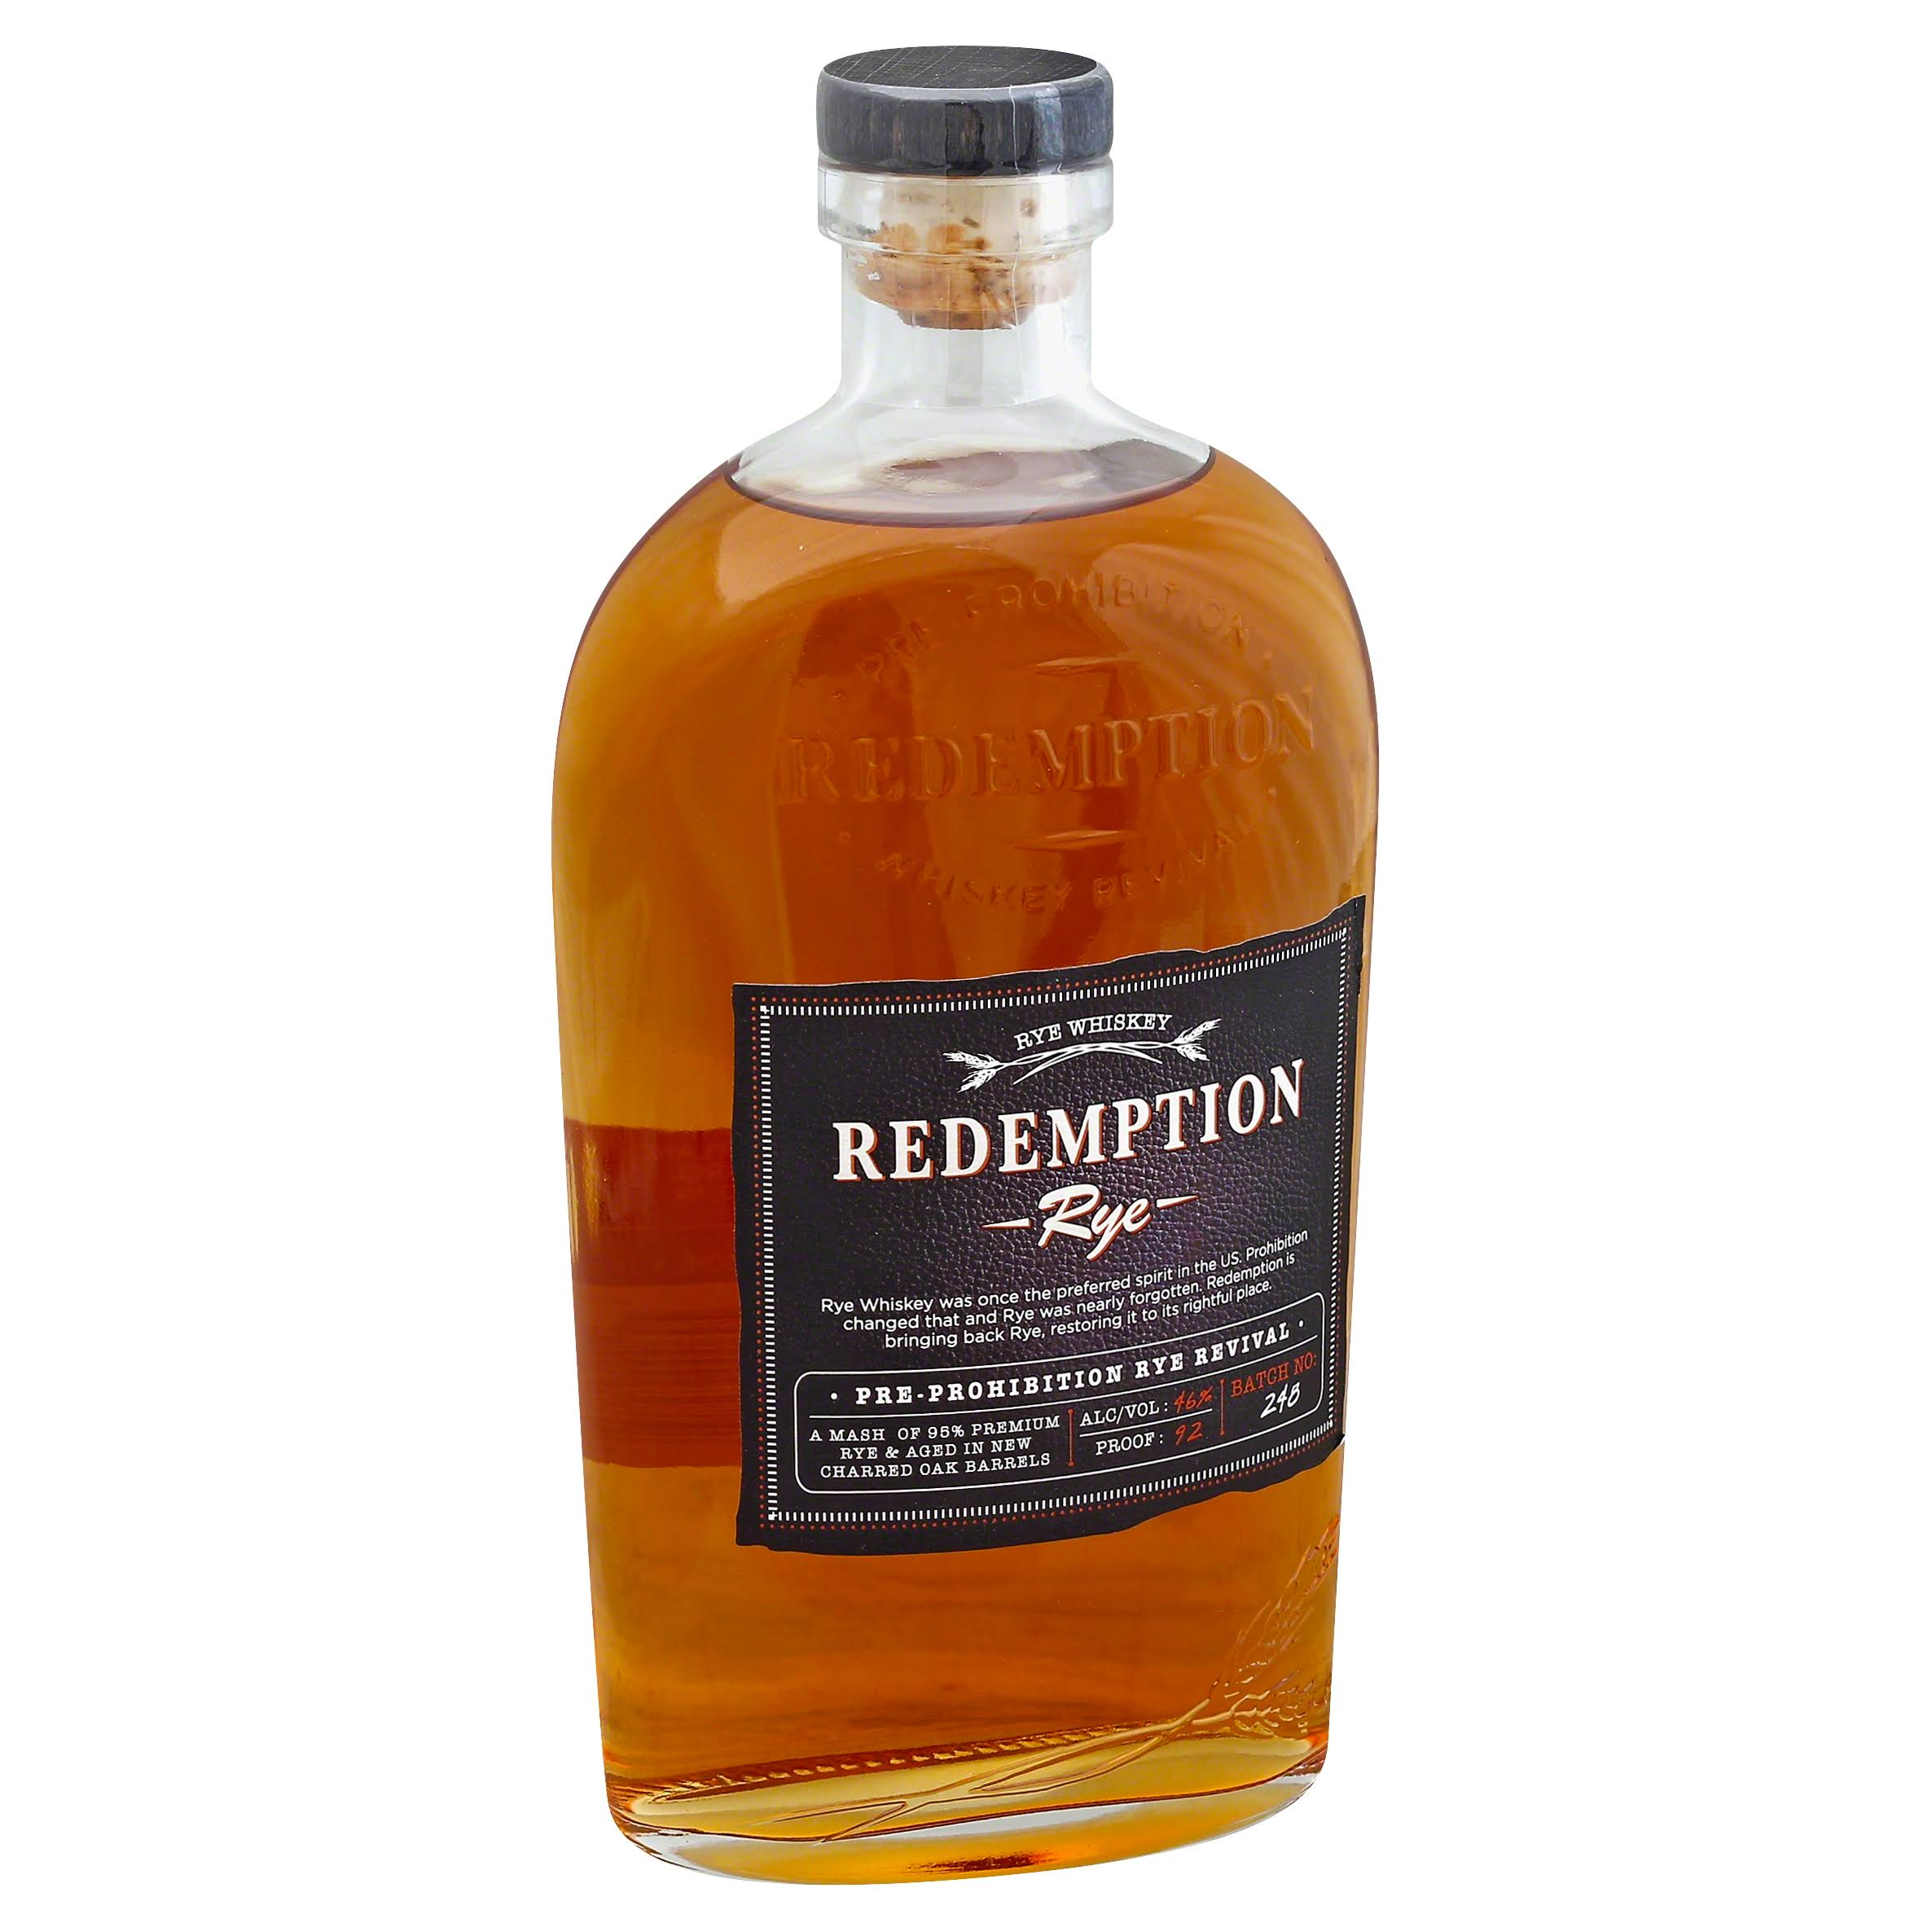 Redemption Rye Whiskey - 750 ml bottle